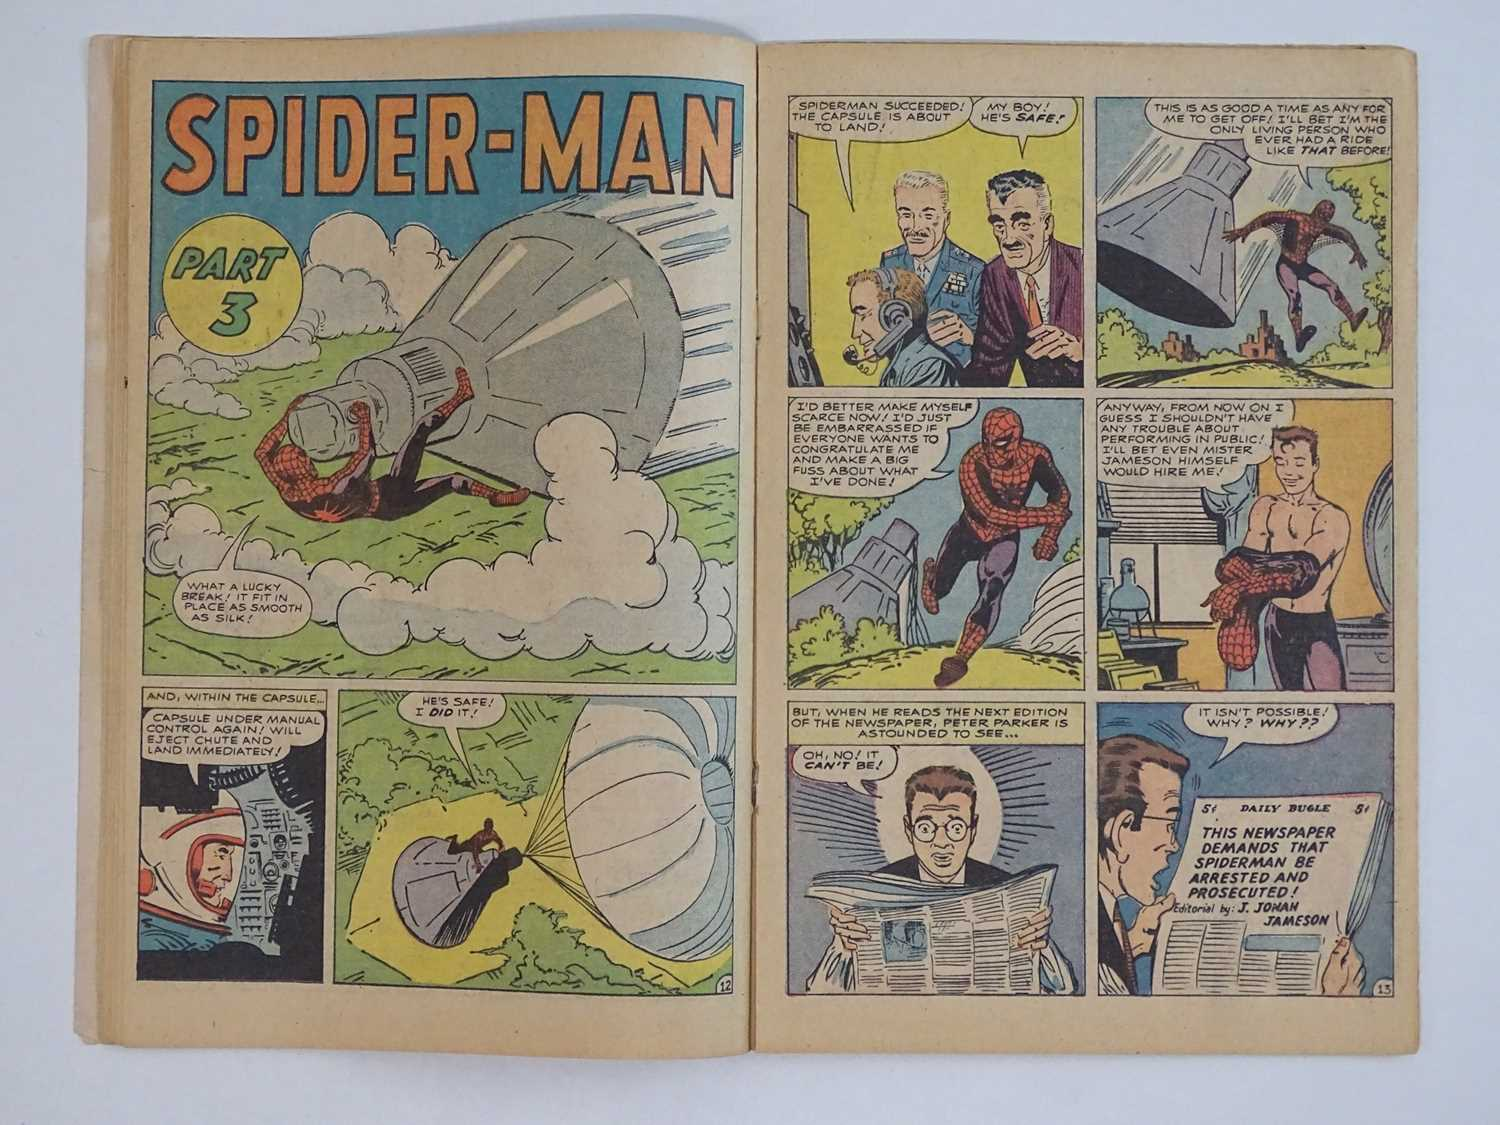 AMAZING SPIDER-MAN #1 - (1963 - MARVEL - UK Price Variant) - First appearance of Spider-Man un his - Image 16 of 27